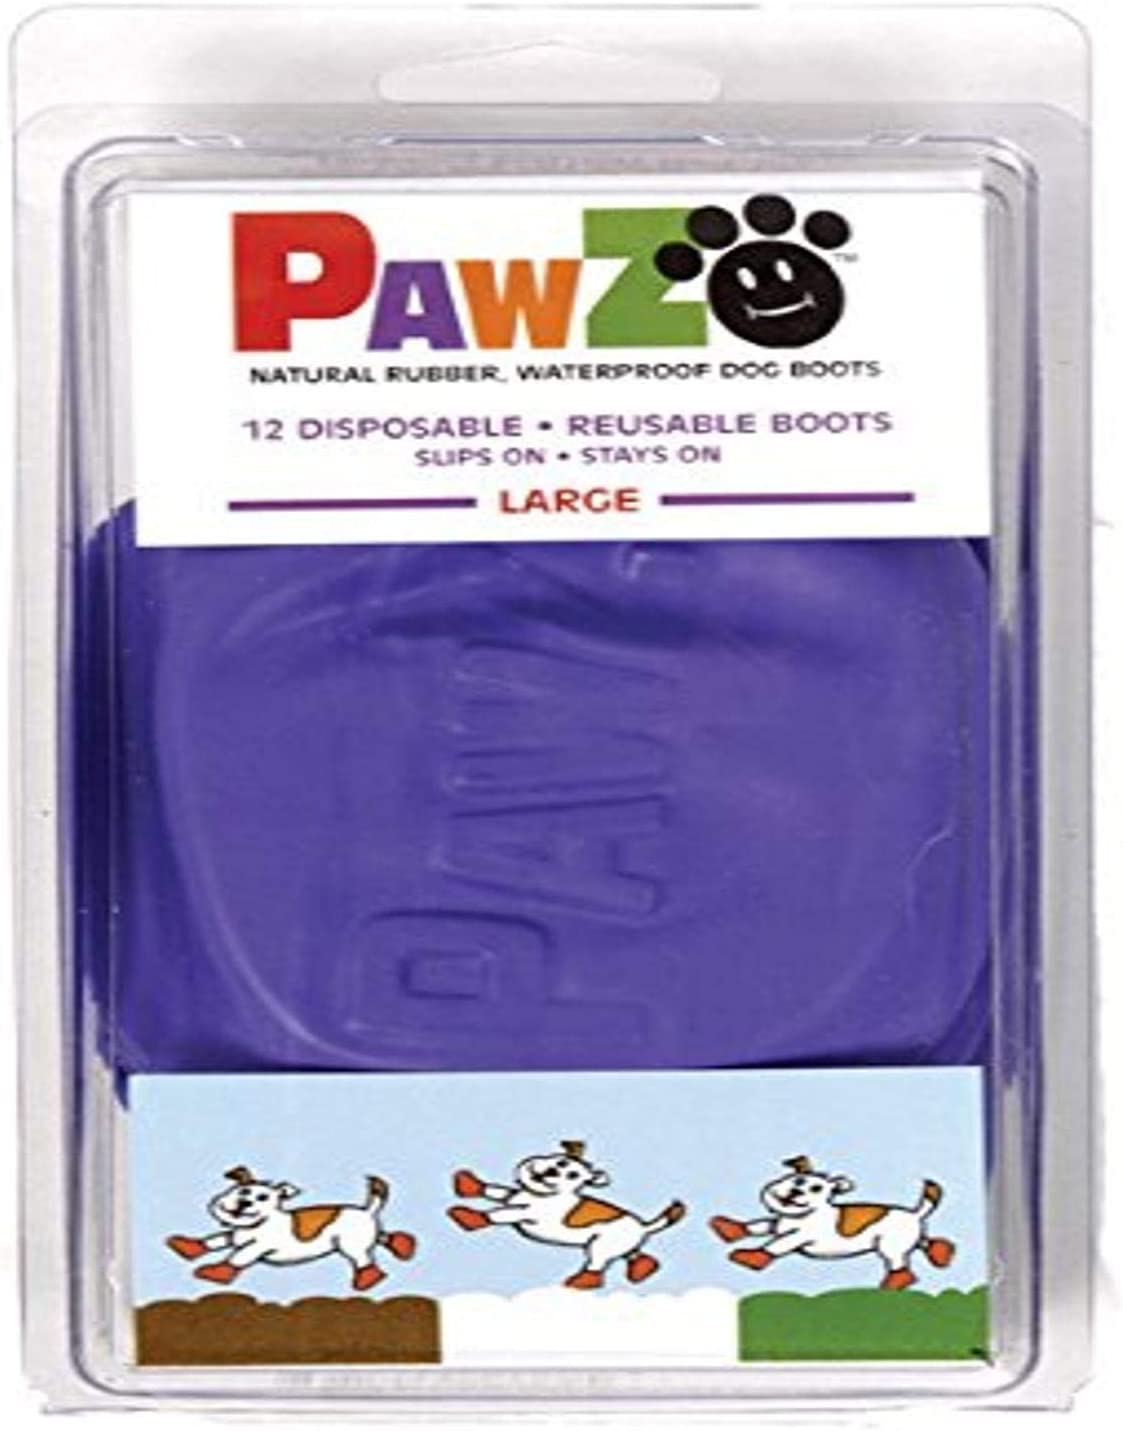 Large Pawz Durable All Weather Dog